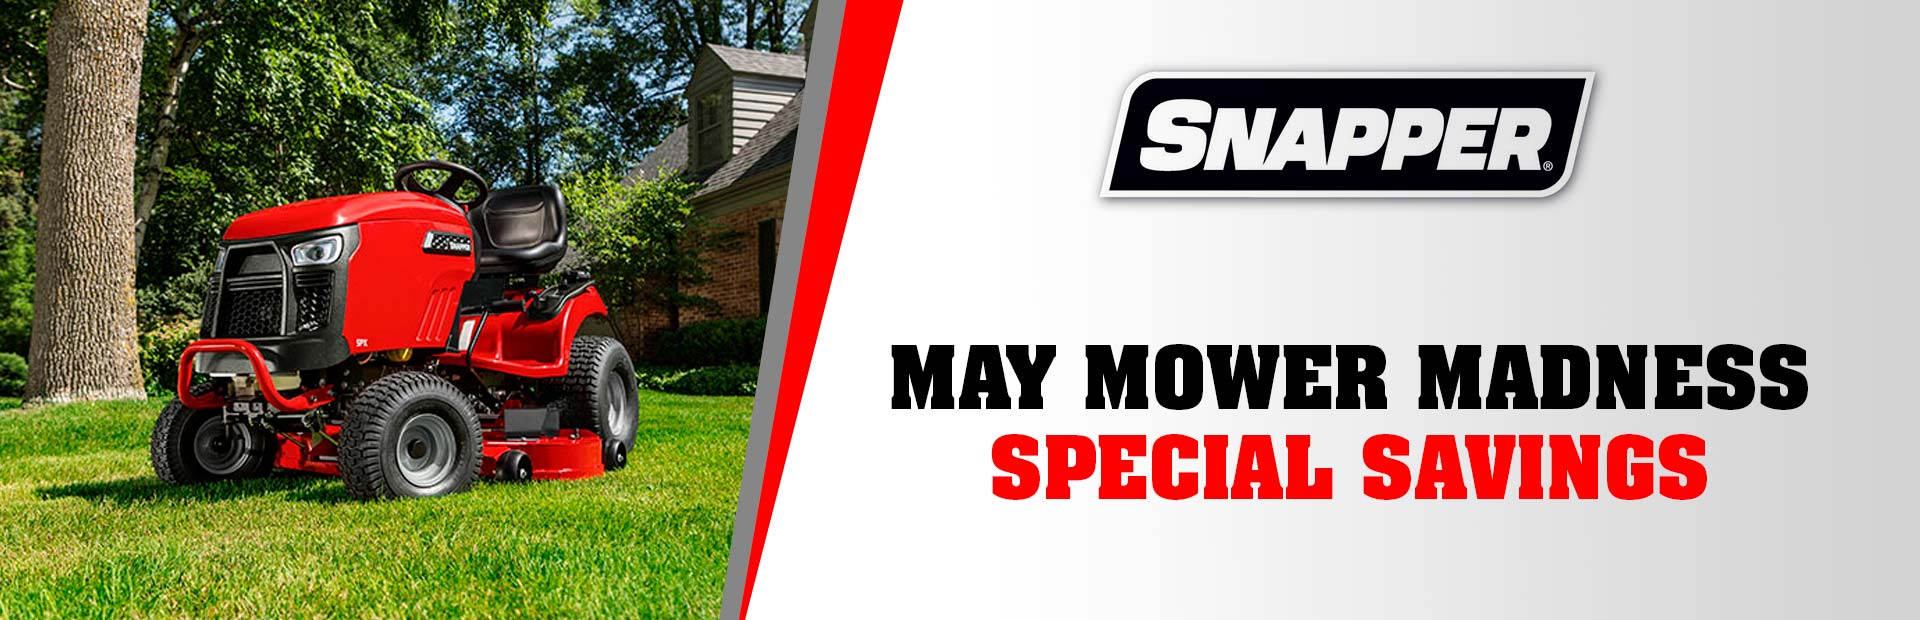 Snapper: MAY MOWER MADNESS SPECIAL SAVINGS